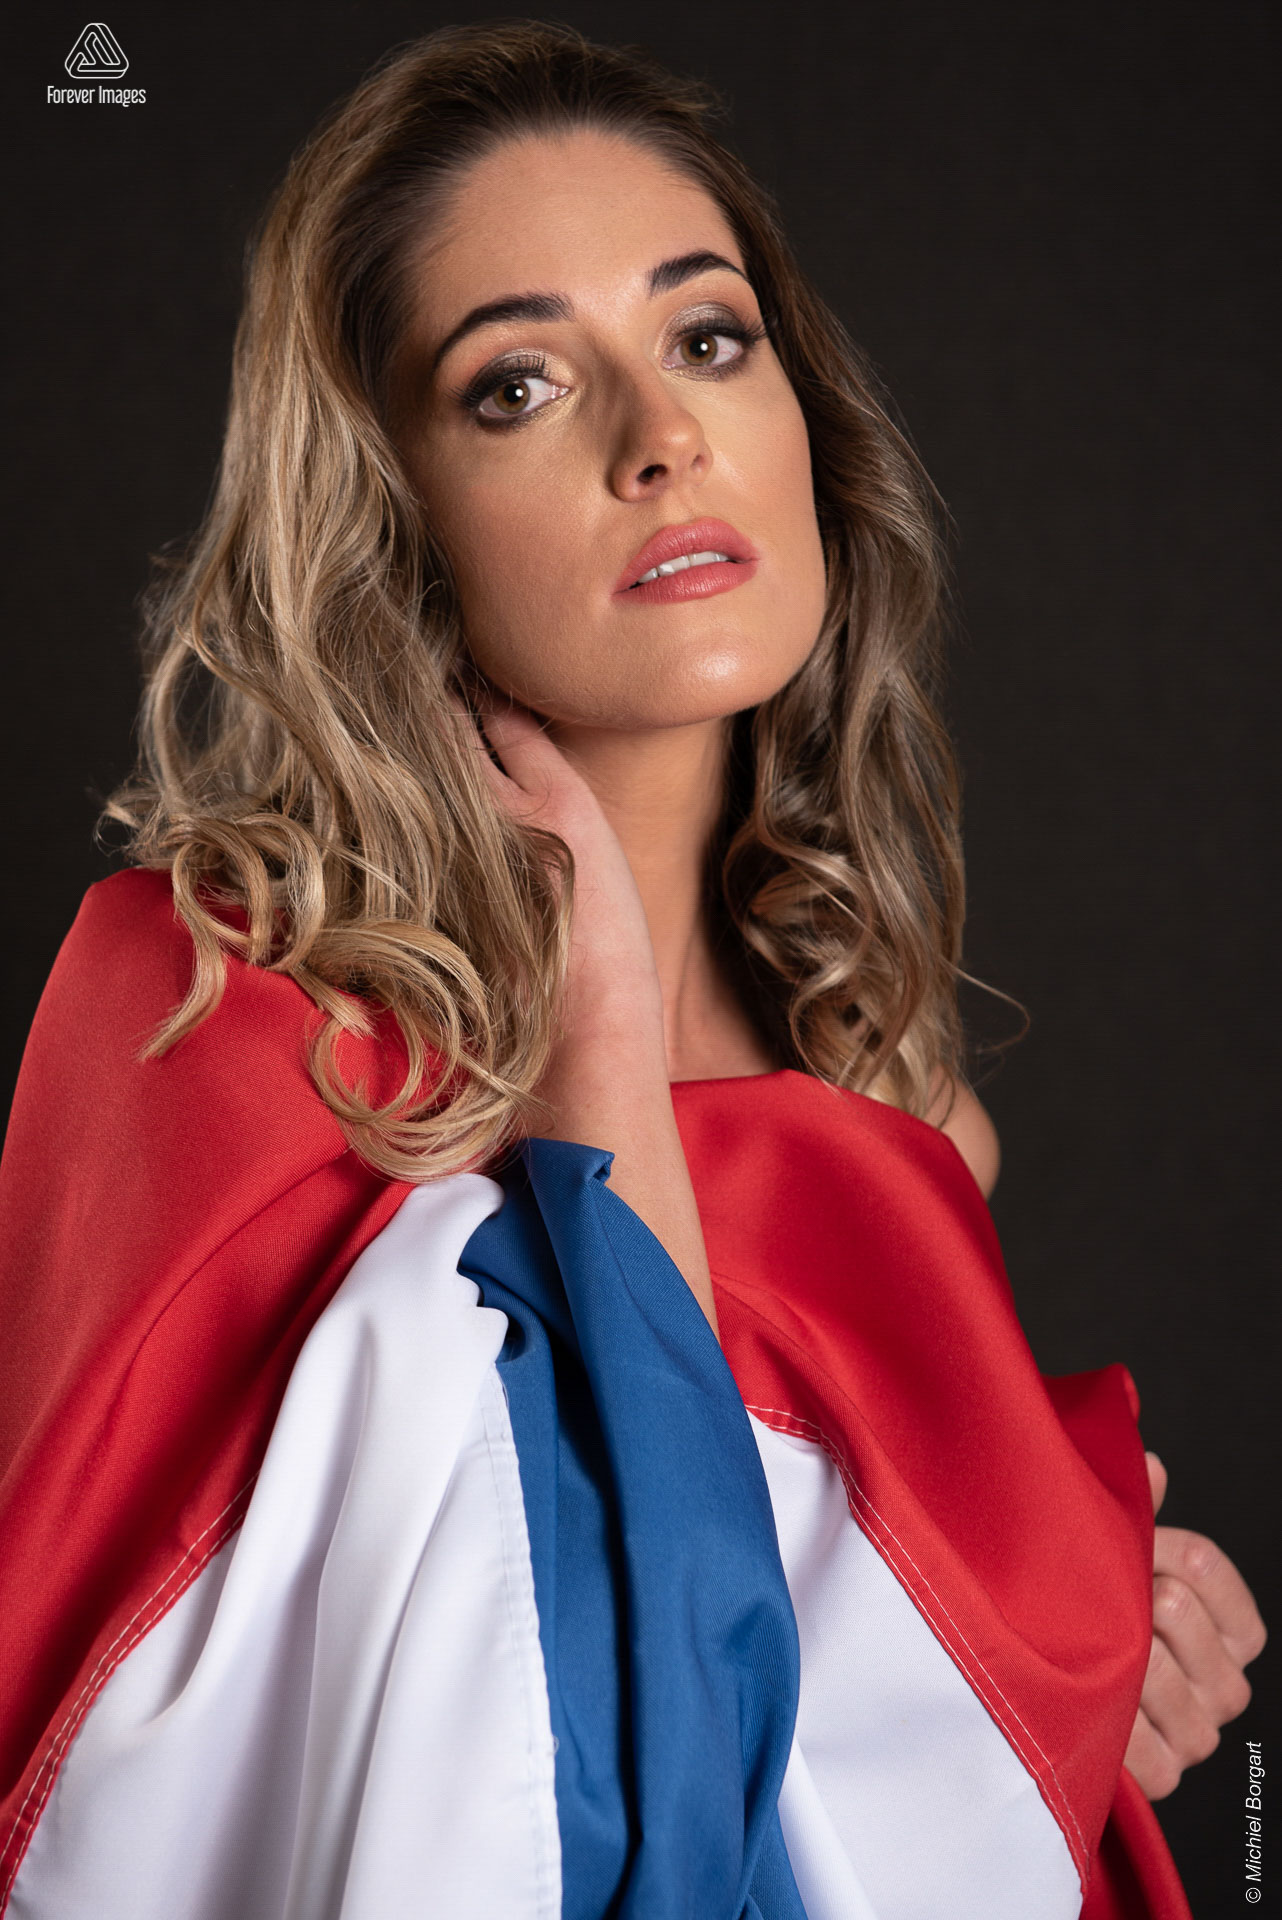 Portrait photo with national flag | Cindy Verkaik Miss Planet Netherlands Vicky Foundation | Portrait Photographer Michiel Borgart - Forever Images.